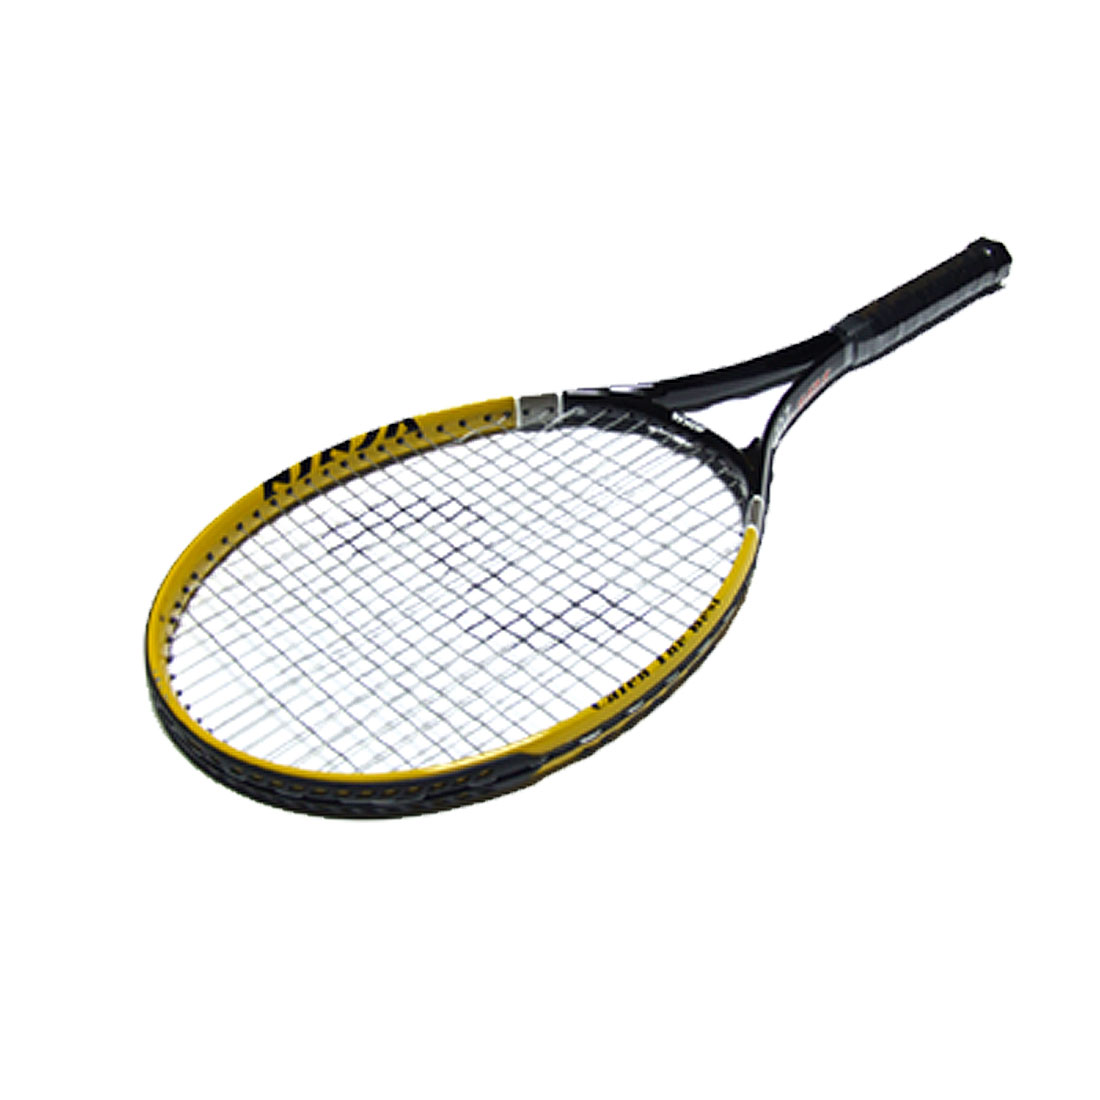 Aluminium Alloy Sports Tennis Racket Racquet with Cover